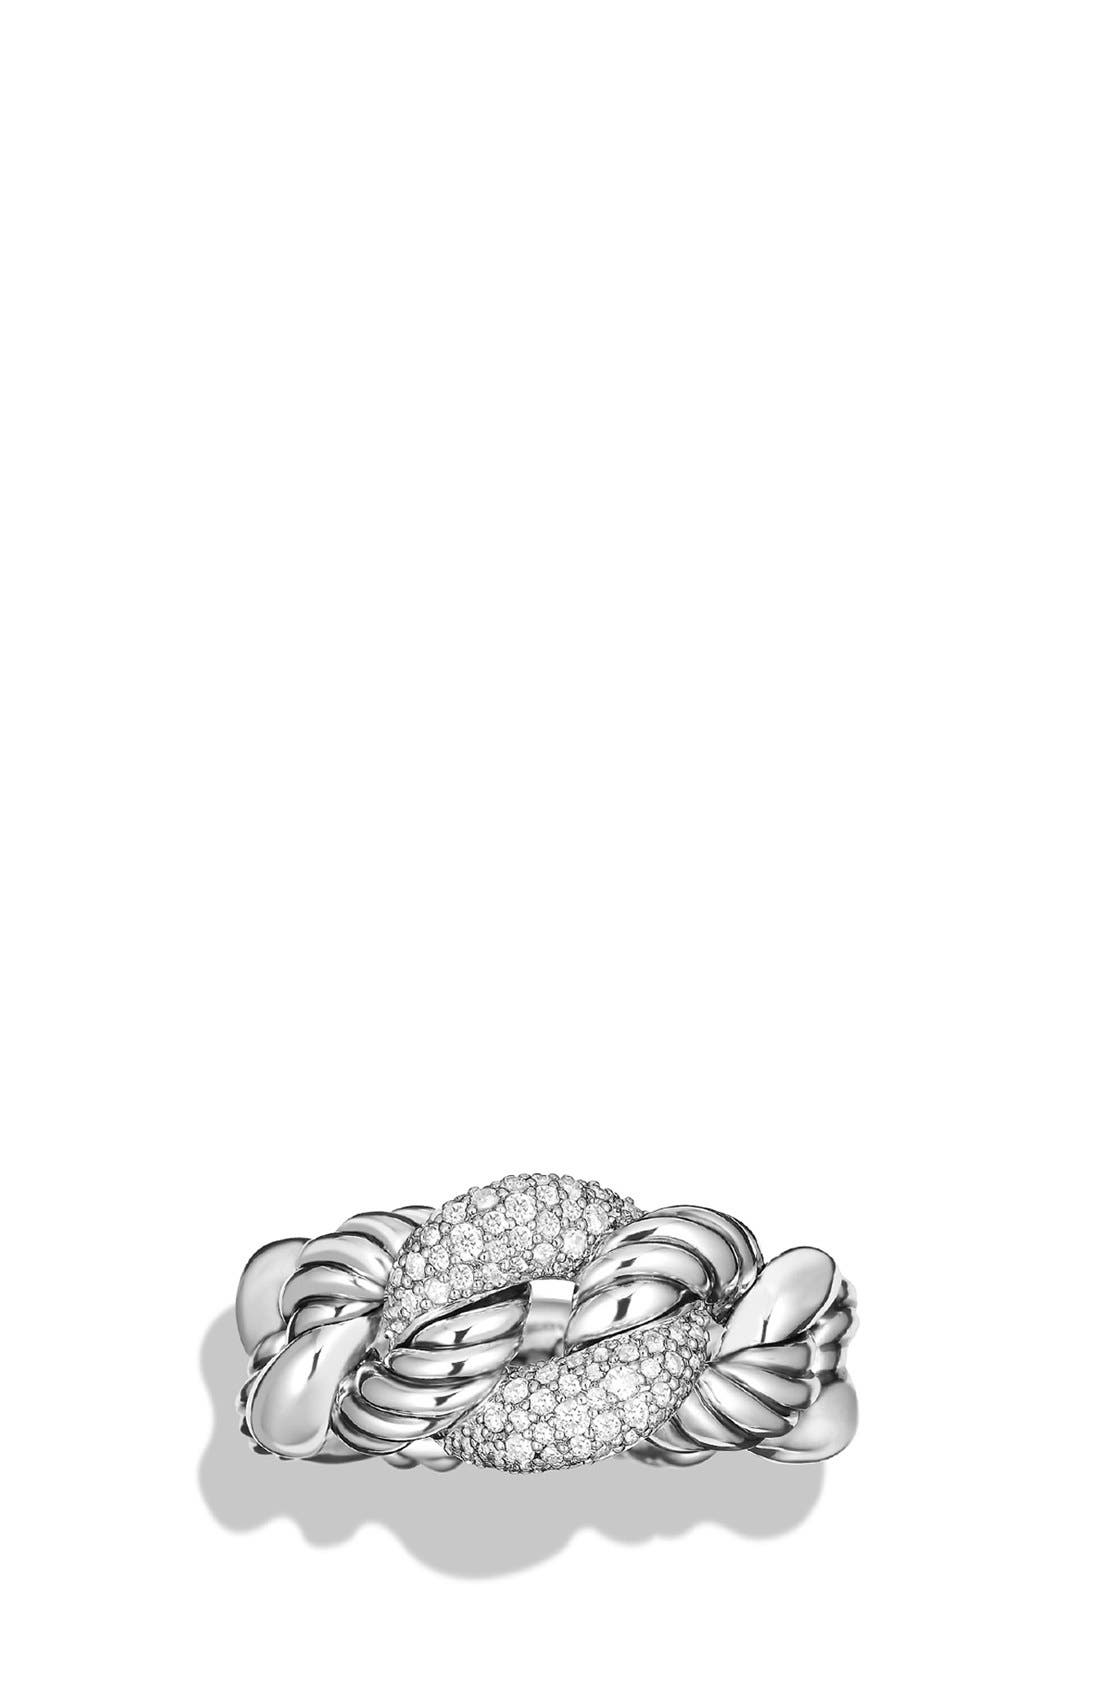 'Belmont' Curb Link Ring with Diamonds,                             Alternate thumbnail 2, color,                             DIAMOND